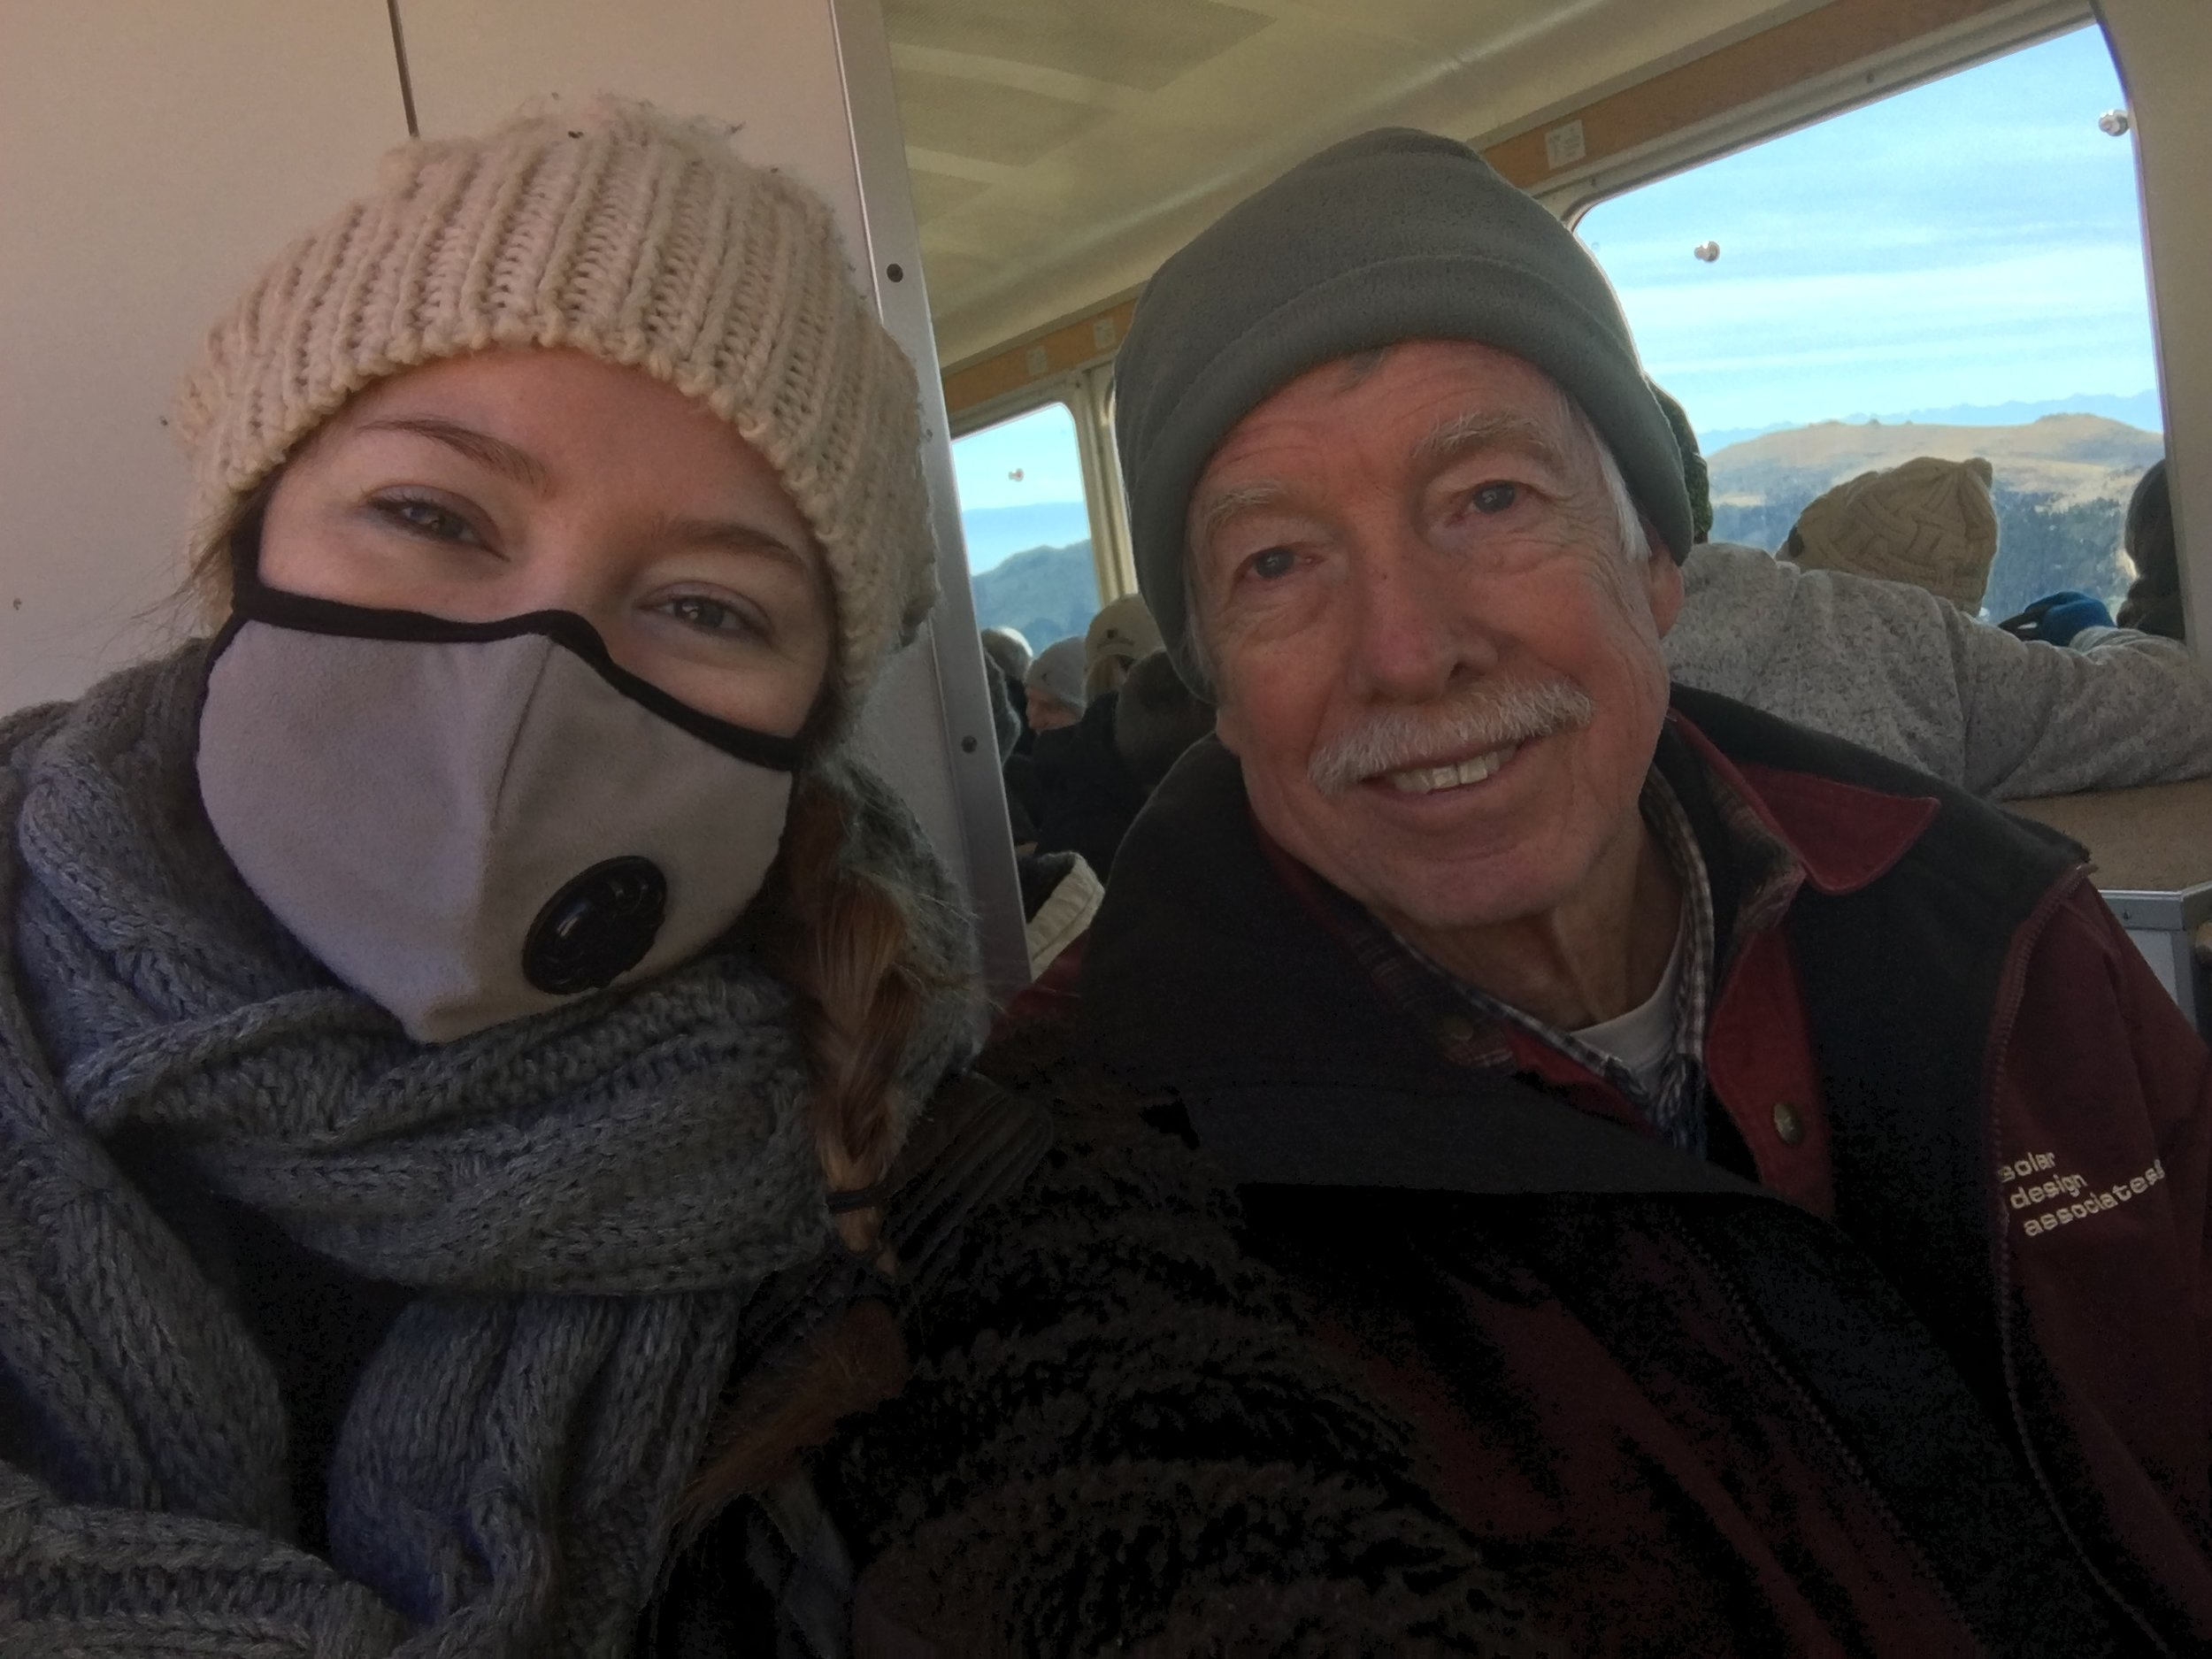 My dad and I on the cog rail up to Pikes peak